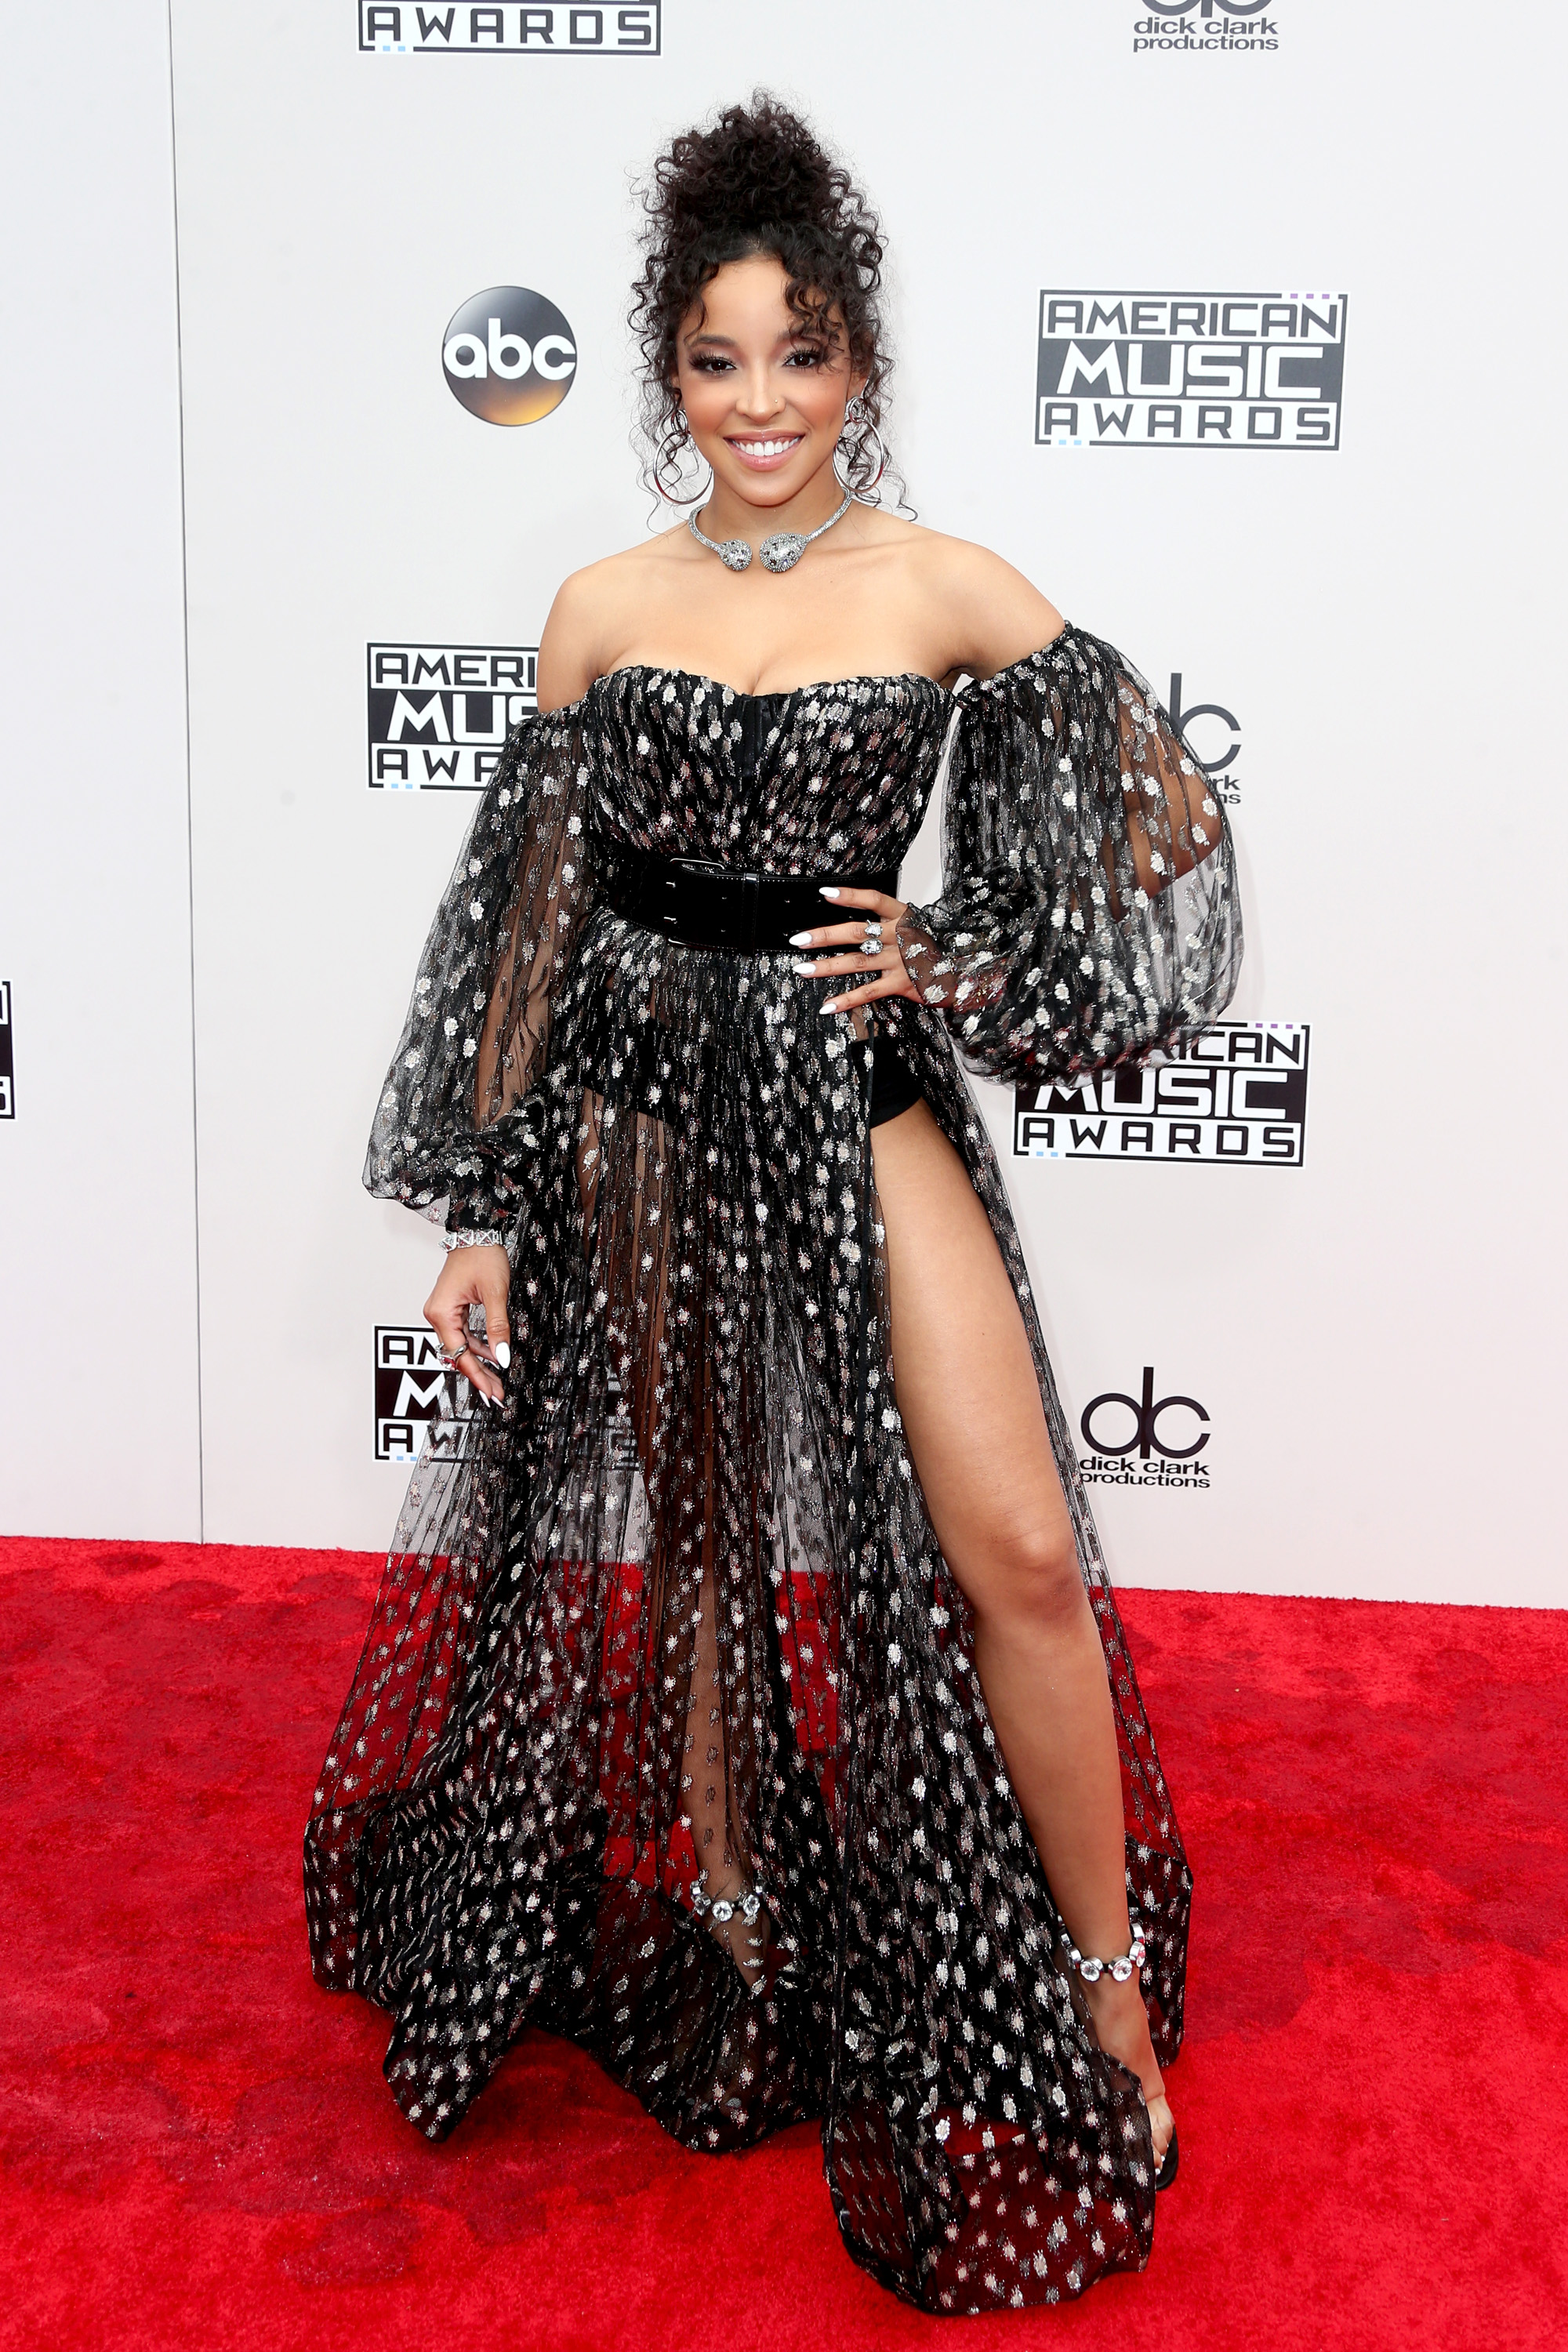 LOS ANGELES, CA - NOVEMBER 20: Singer Tinashe attends the 2016 American Music Awards at Microsoft Theater on November 20, 2016 in Los Angeles, California. (Photo by Frederick M. Brown/Getty Images)